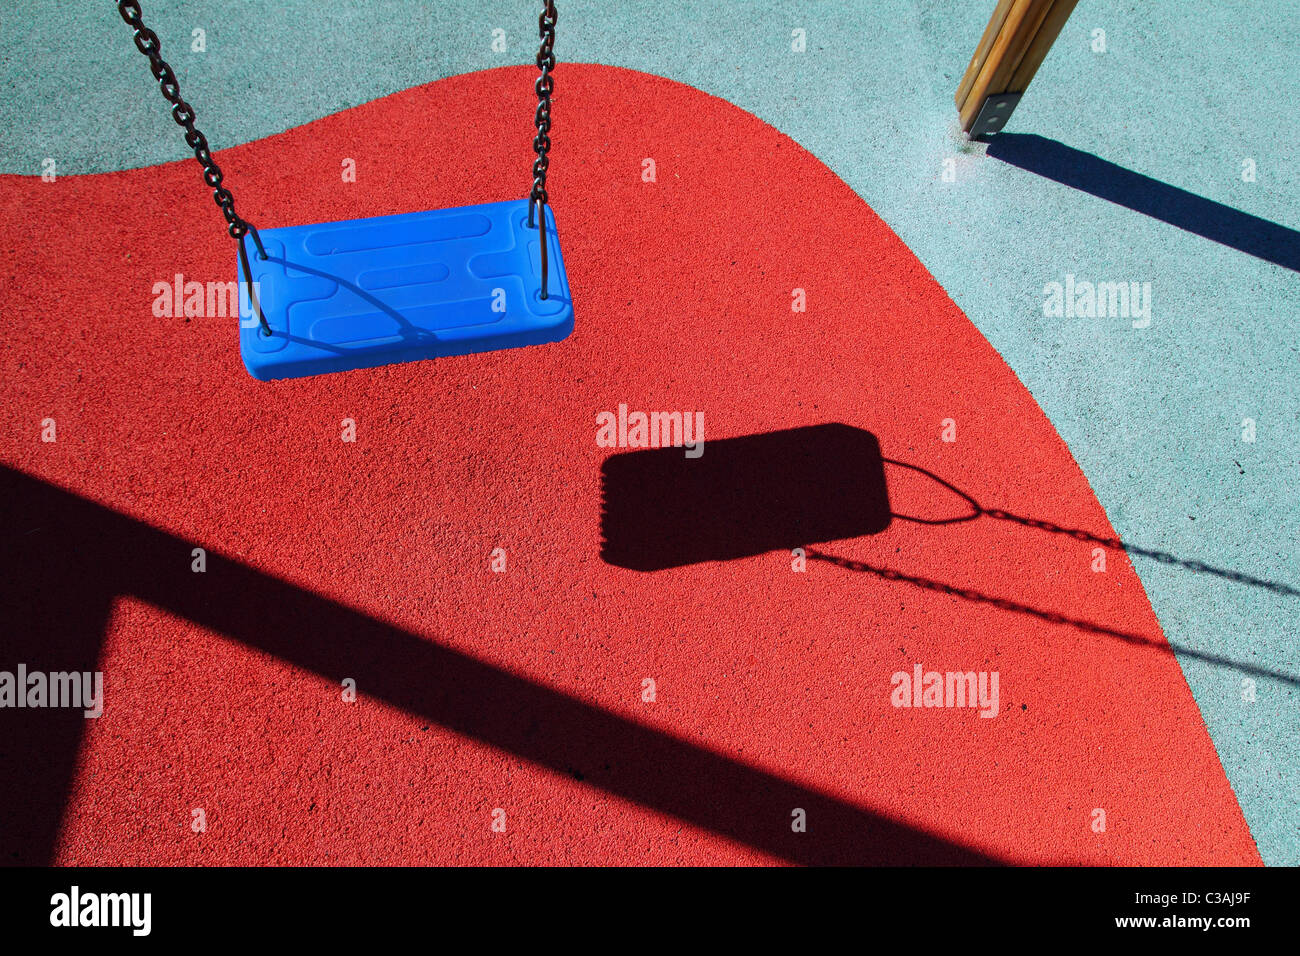 blue park swing or red floor children playground with shadows - Stock Image